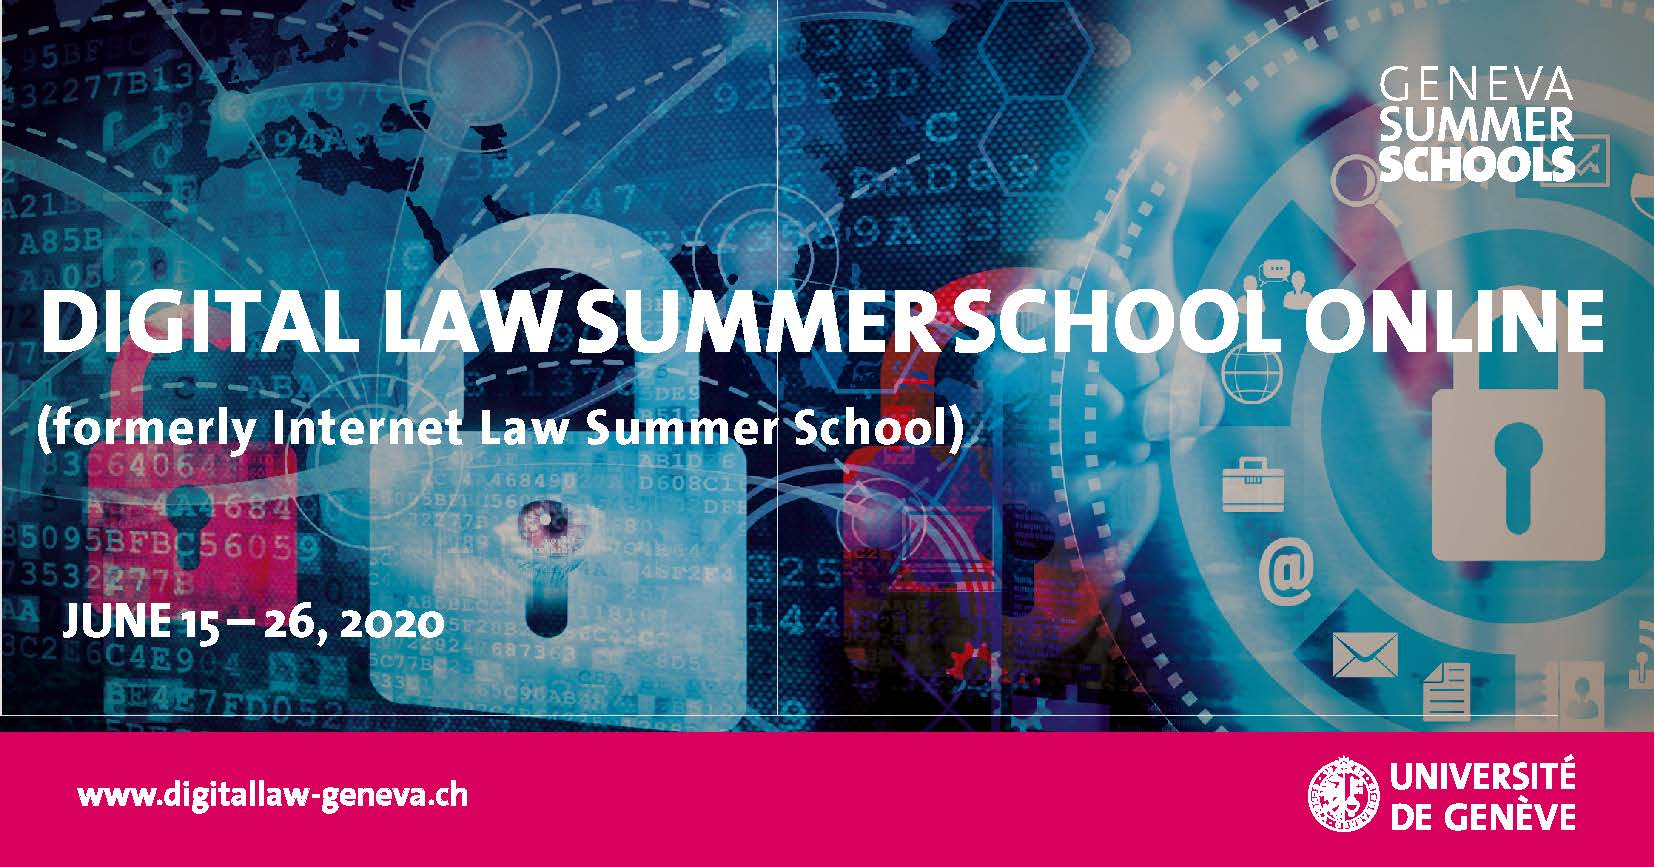 Geneva Summer Schools • Digital Law With Georgia State Summer School Schedule